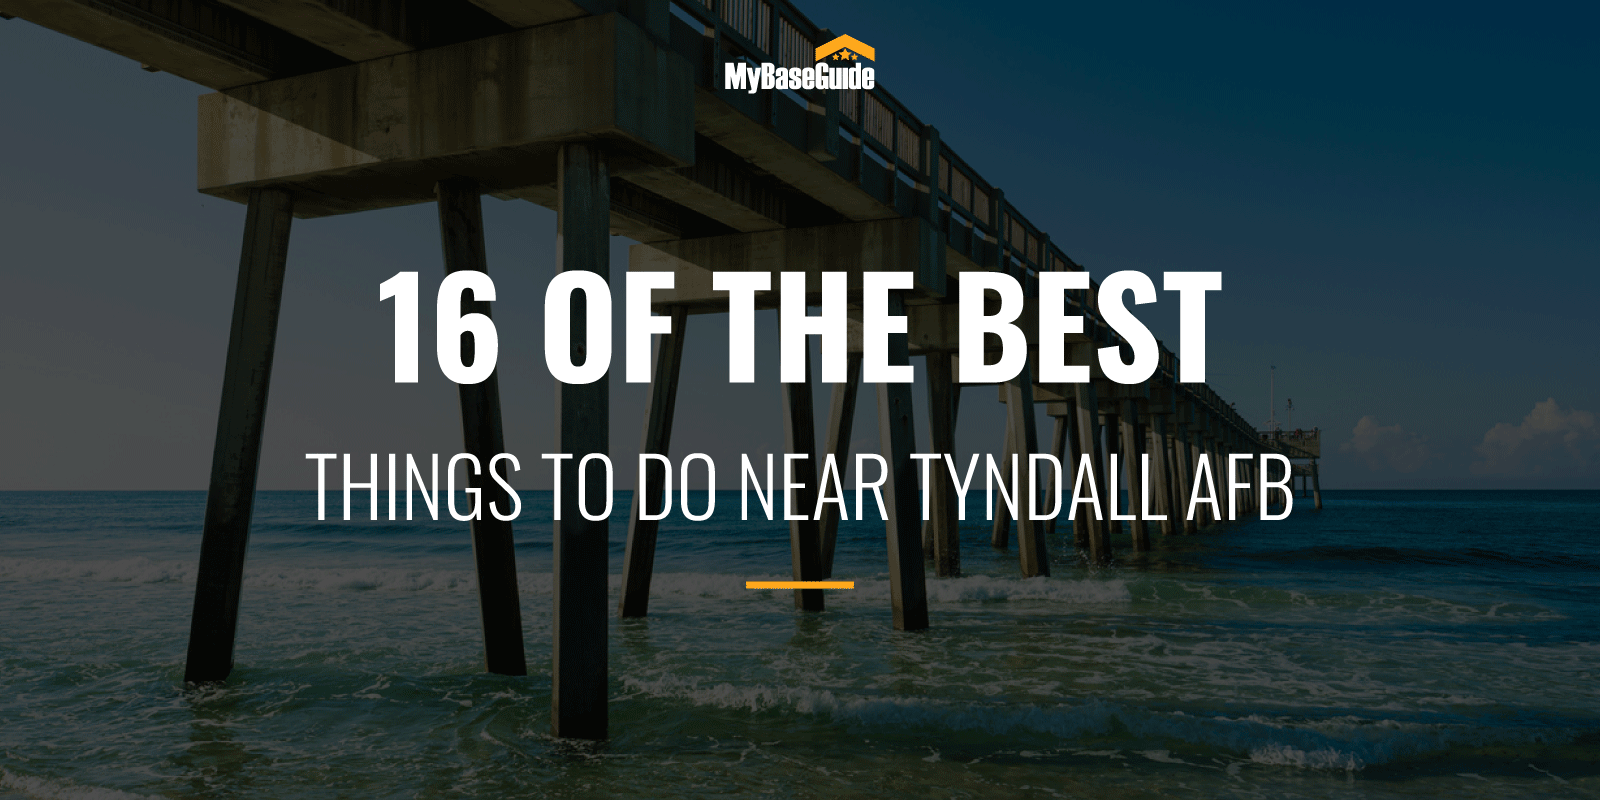 16 Of the Best Things to Do Near Tyndall AFB